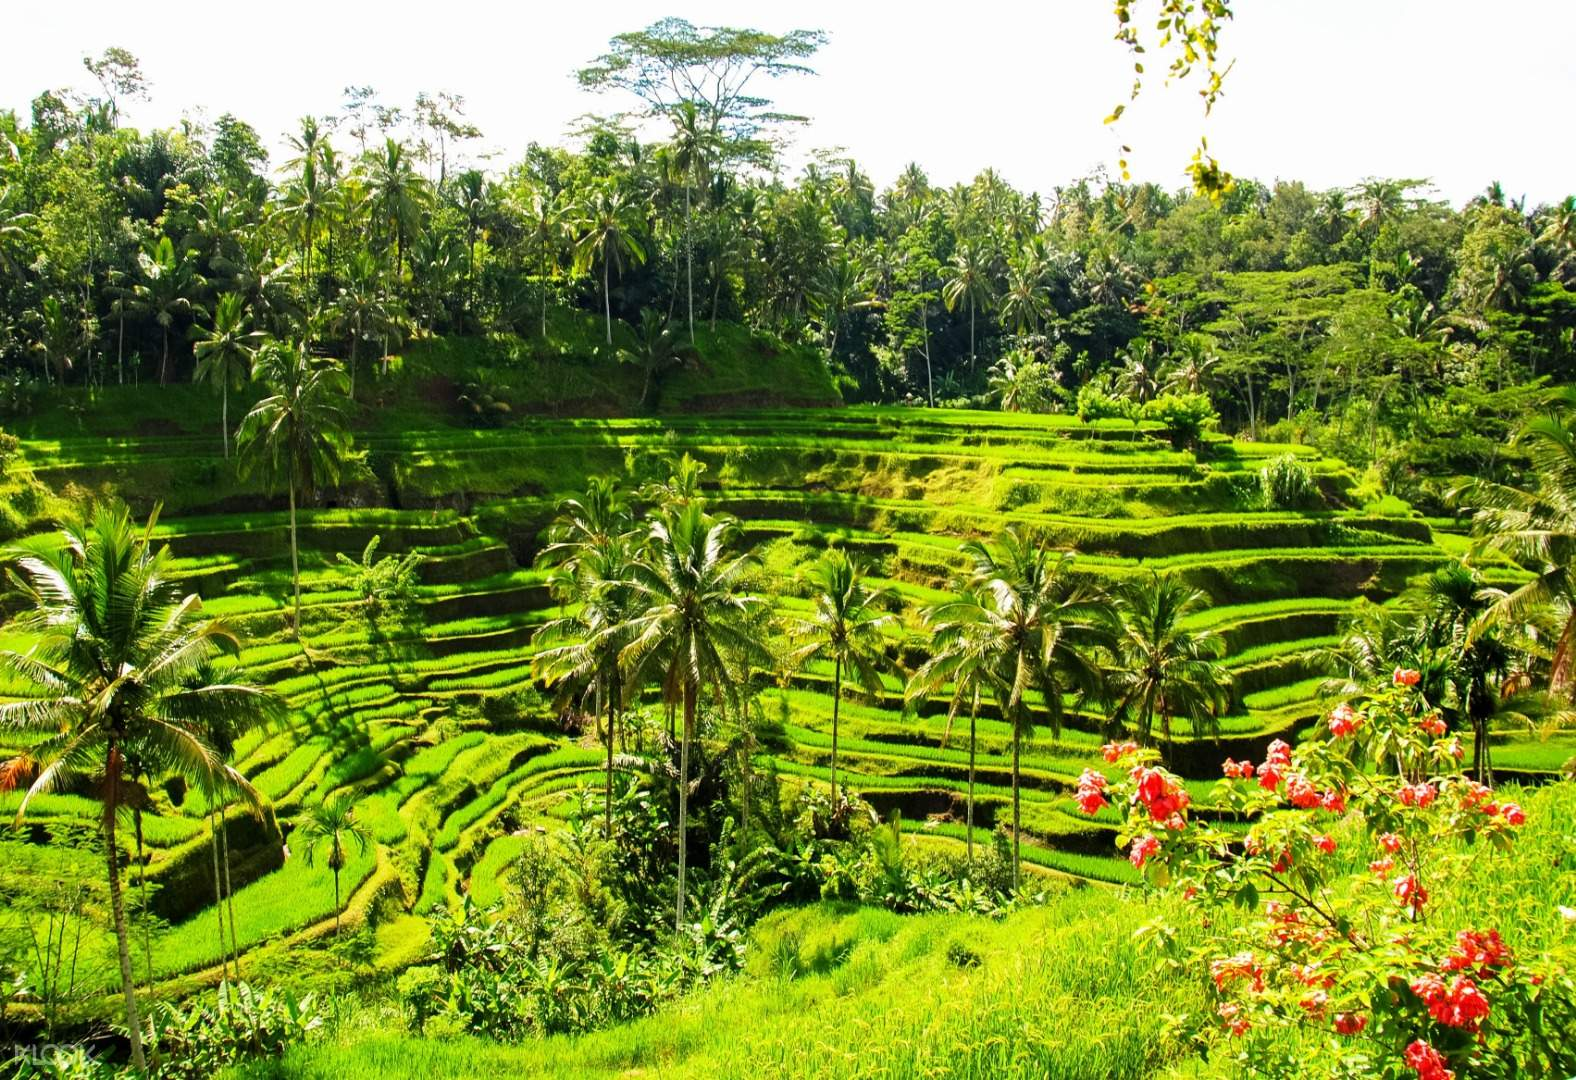 Bali Swing Ayung River Rafting And Ubud Tour With Massage Experience In Bali